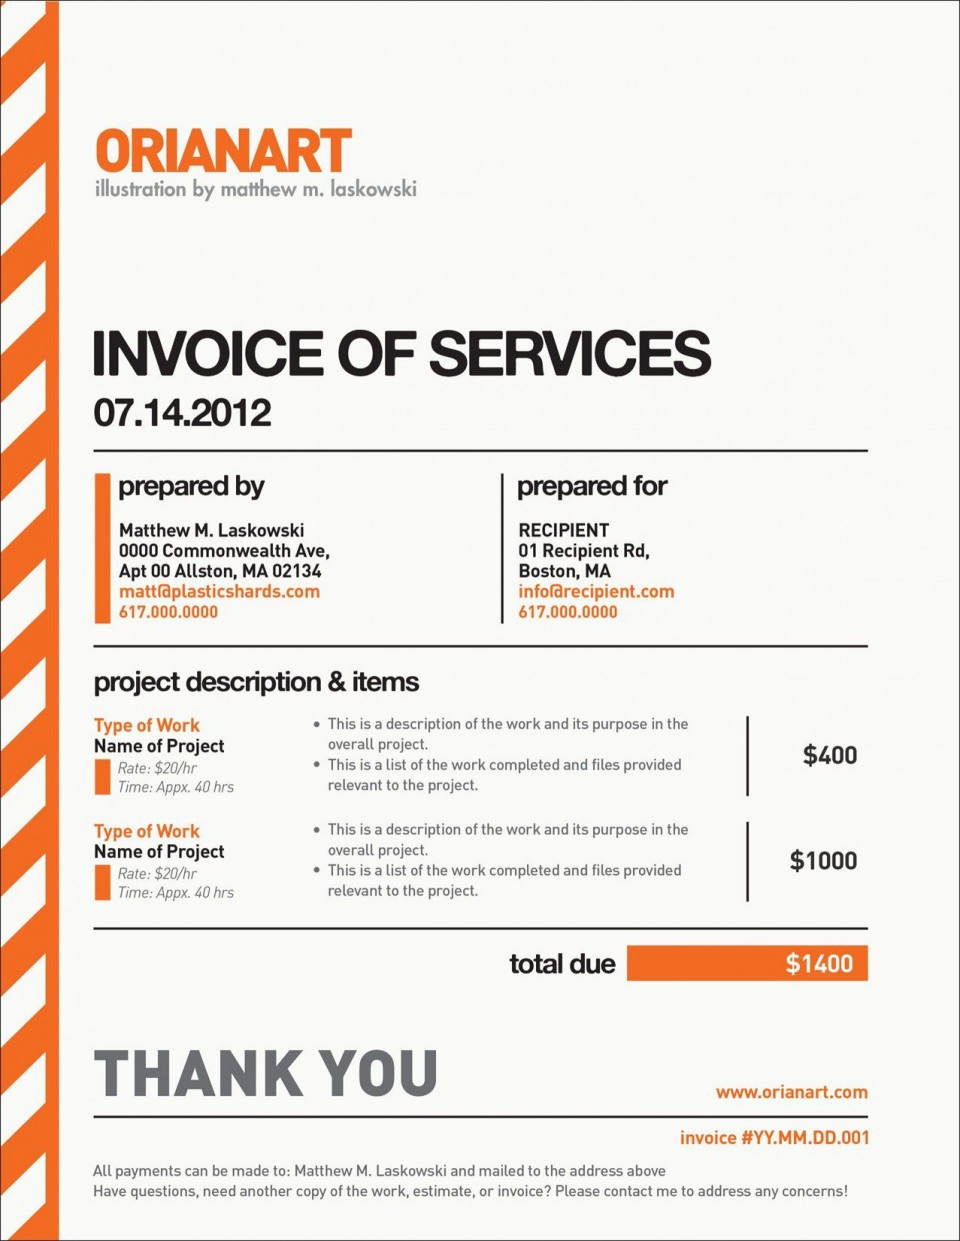 003 Rare Freelance Graphic Design Invoice Example Inspiration  Contract Template Sample960